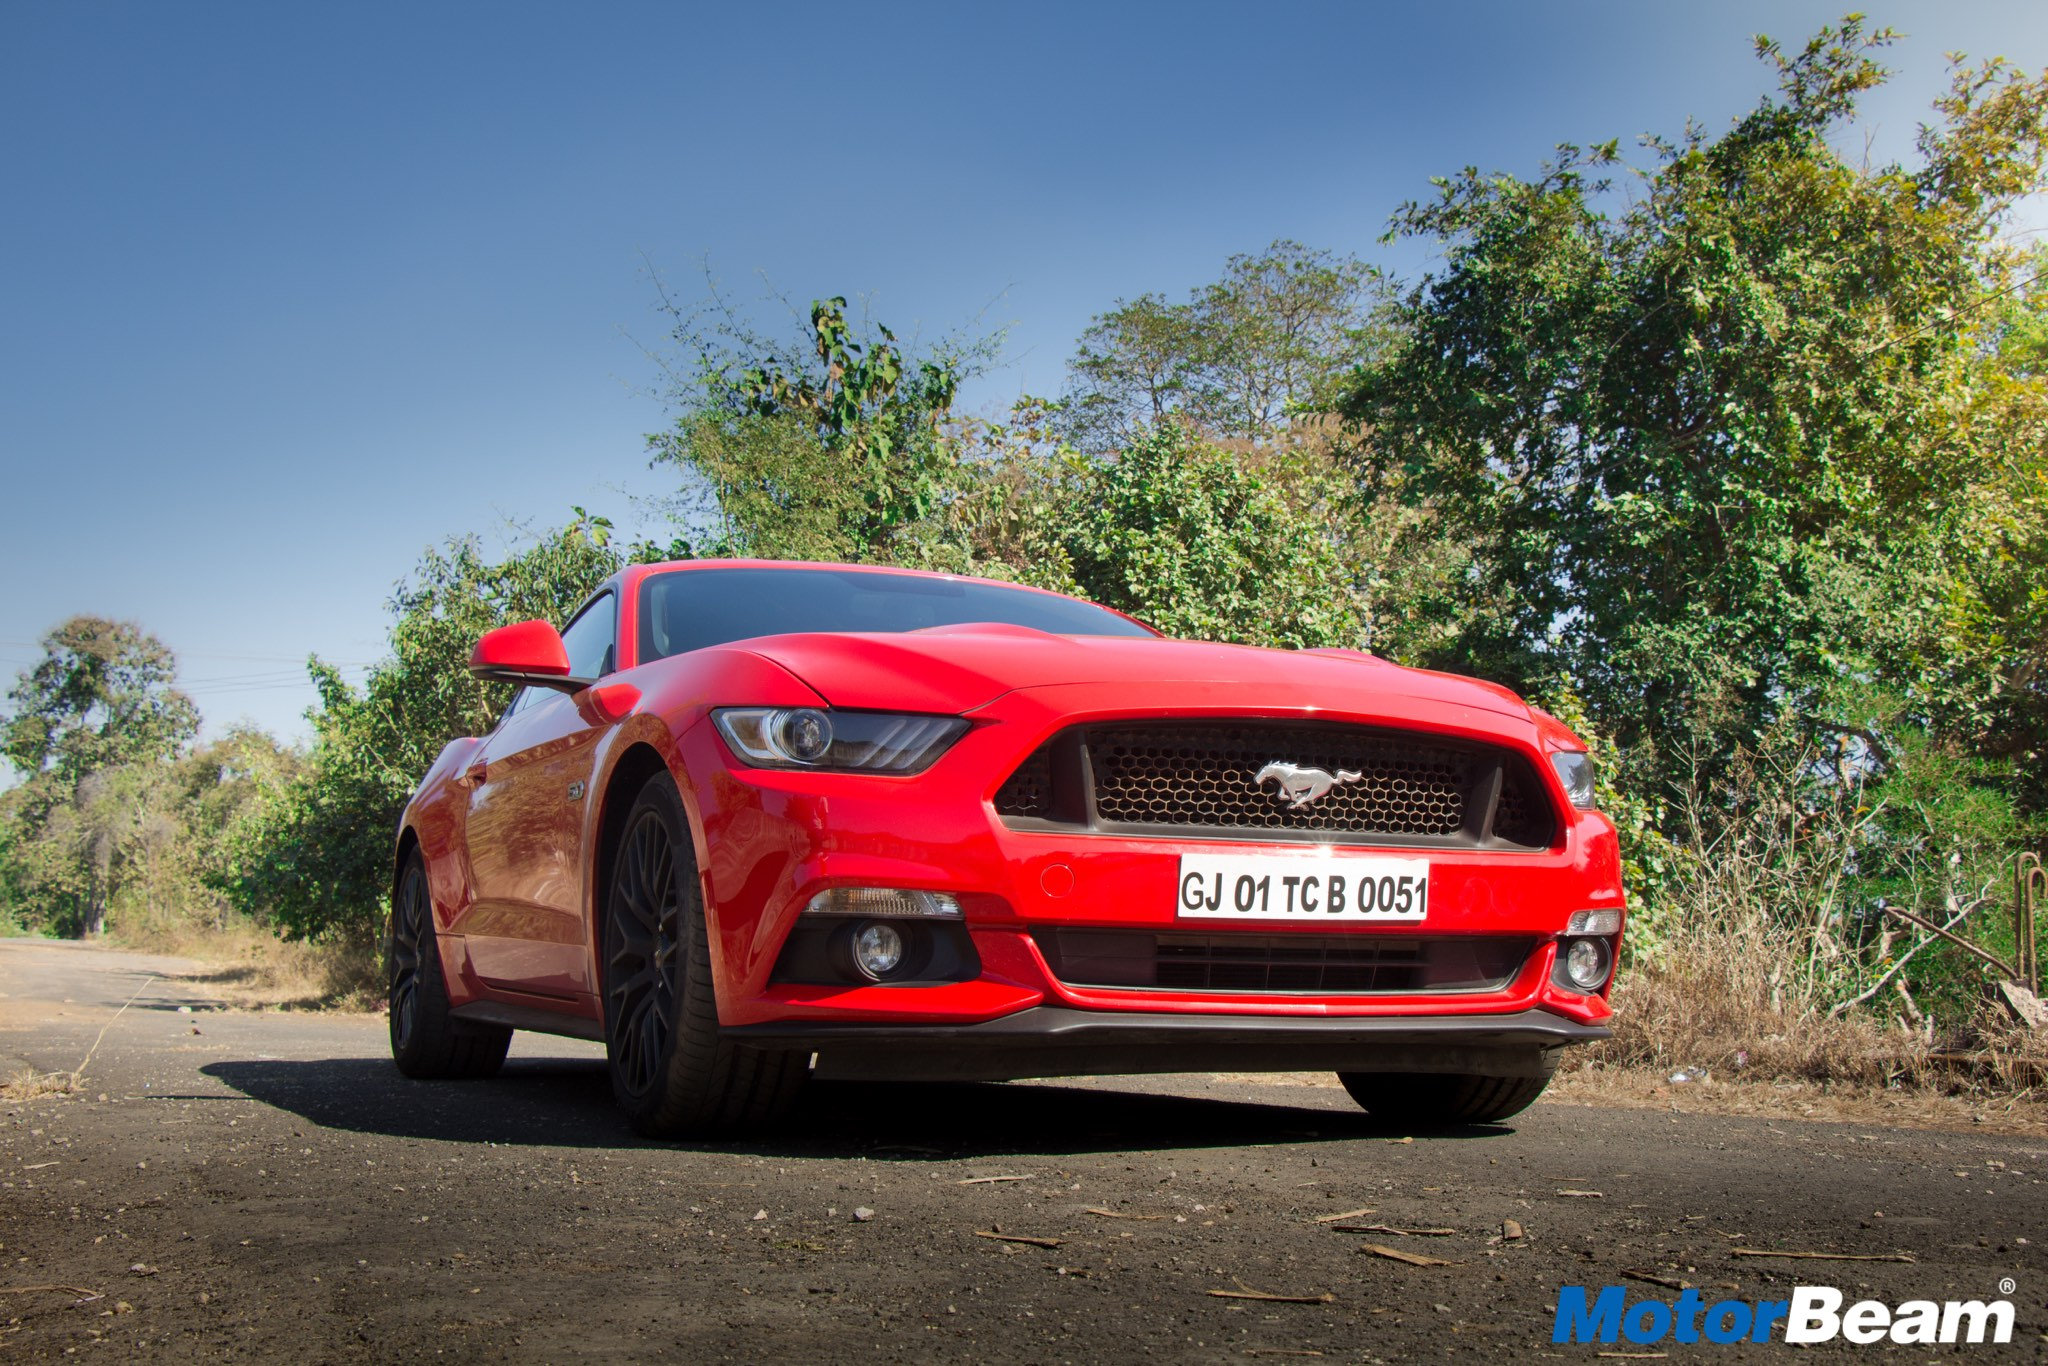 5 reasons why ford mustang is best sportscar for india